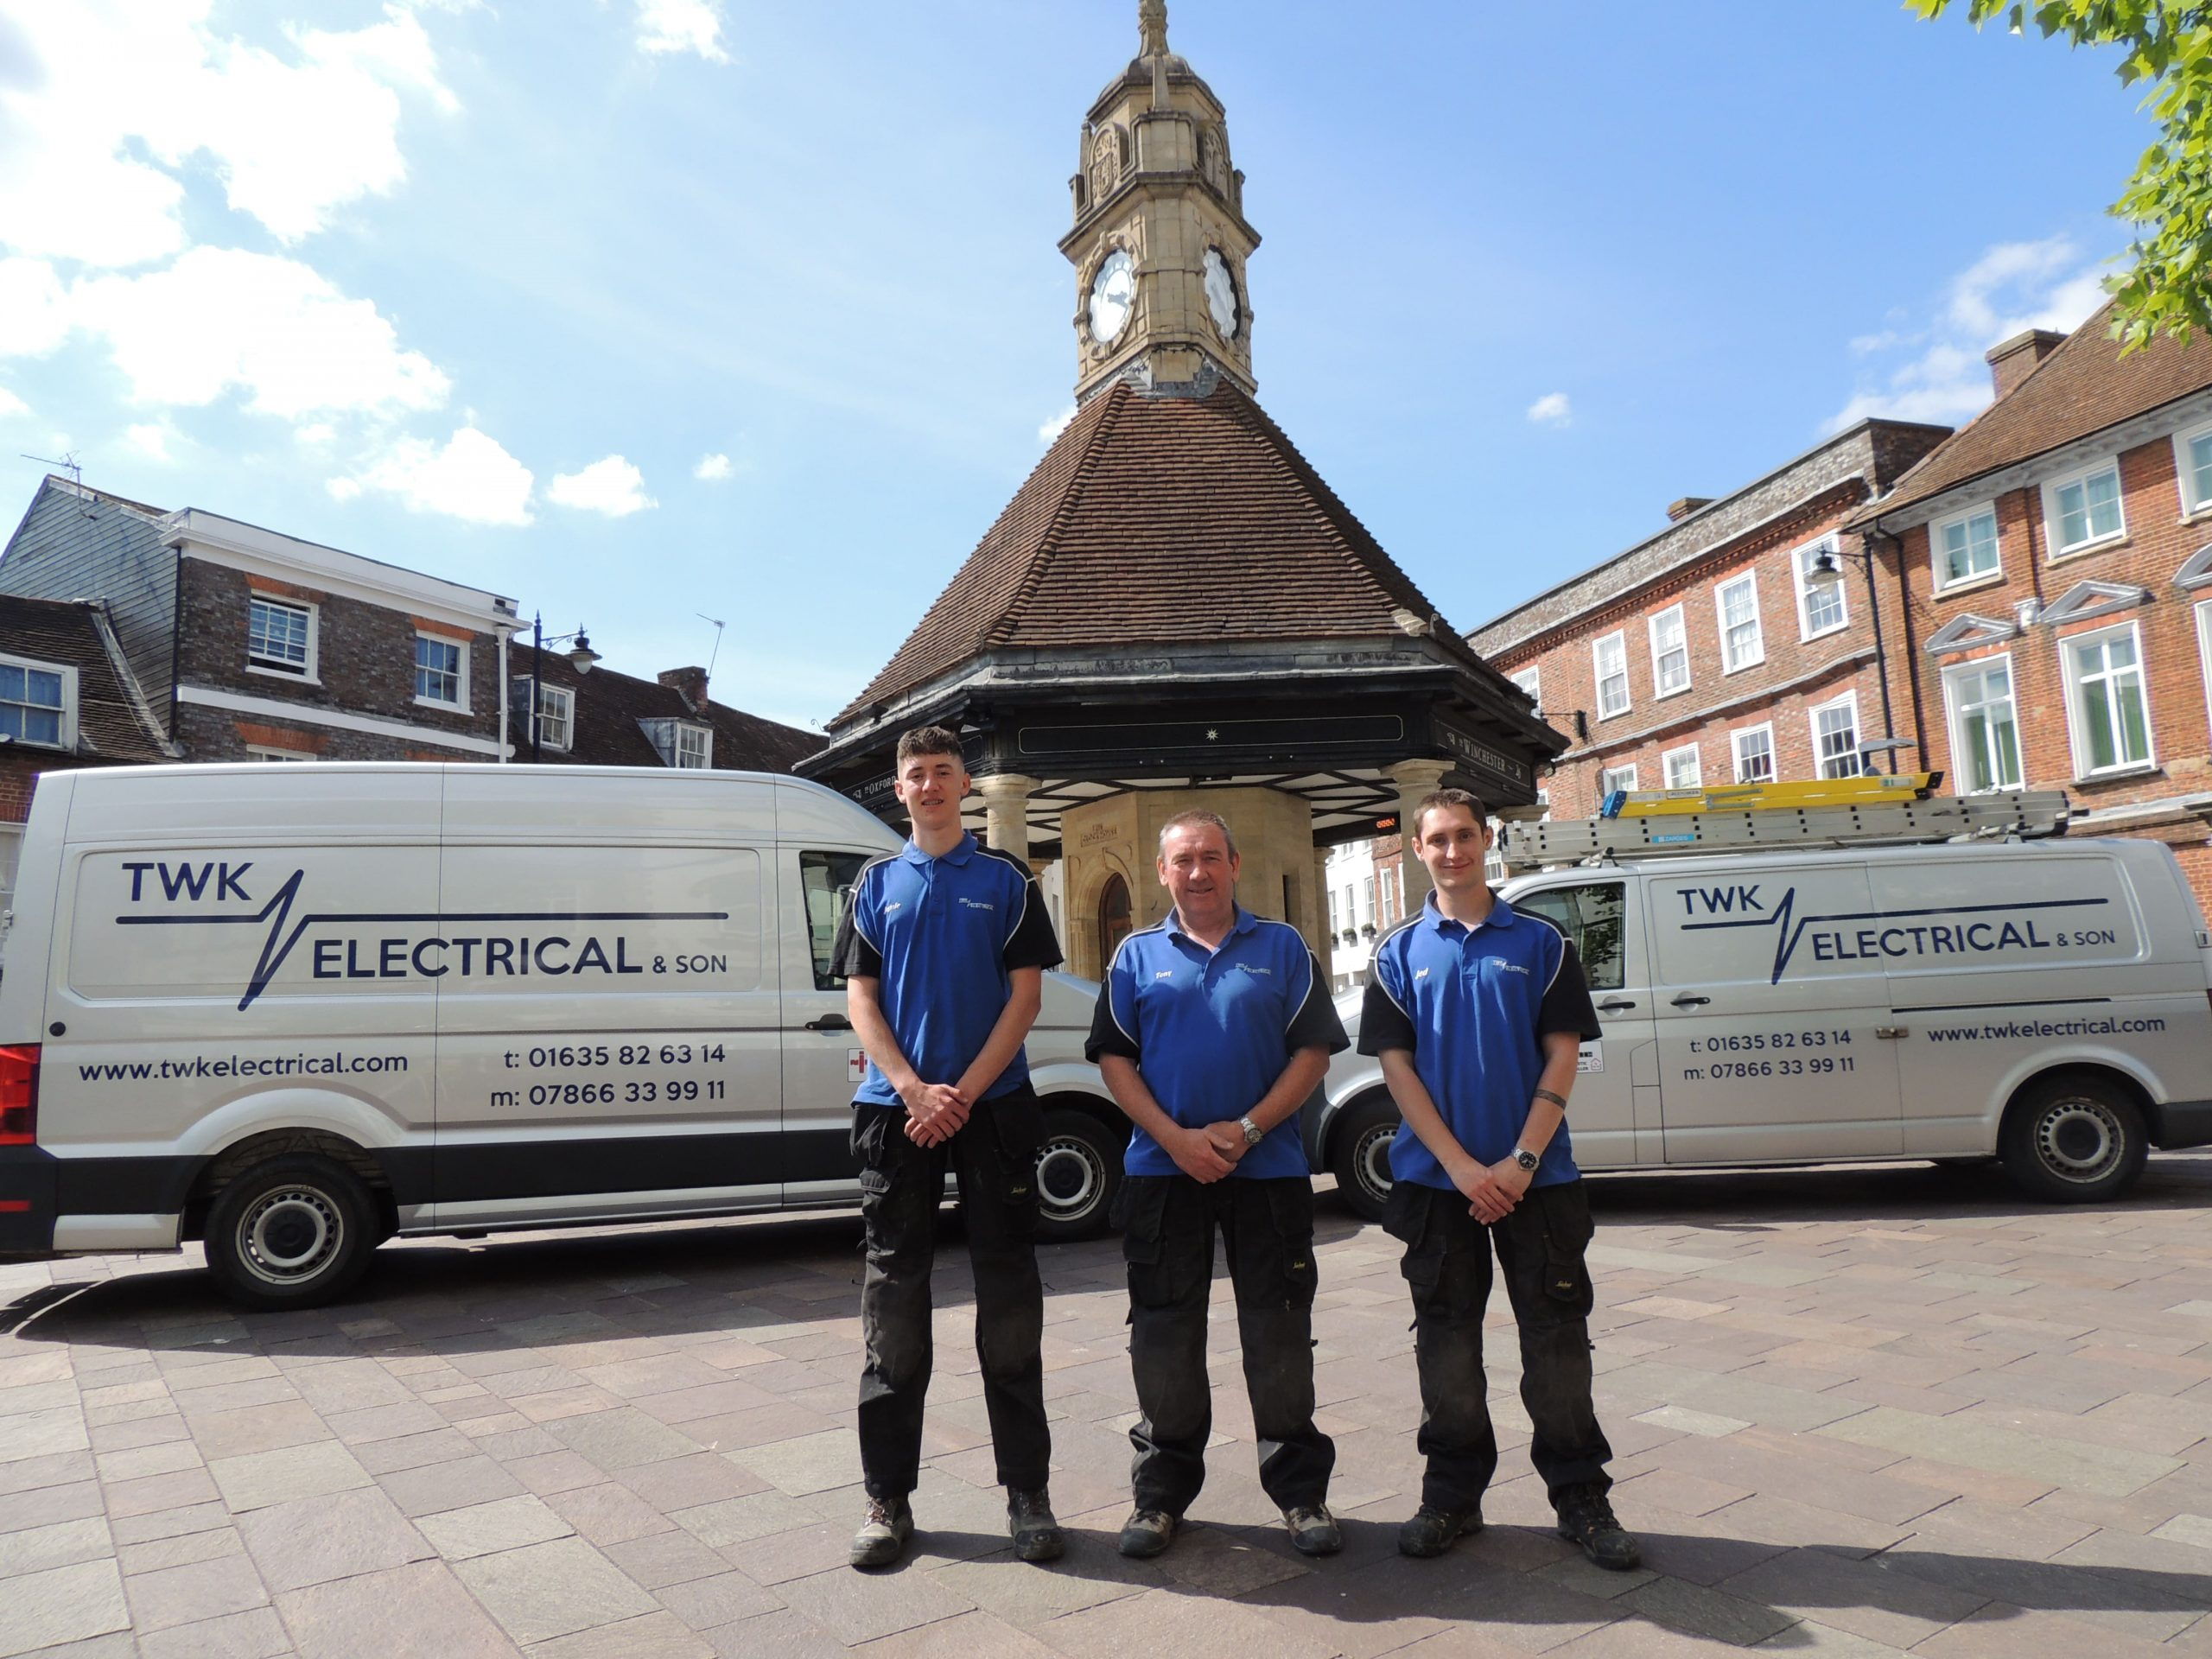 Newbury clock tower - TWK Electrical